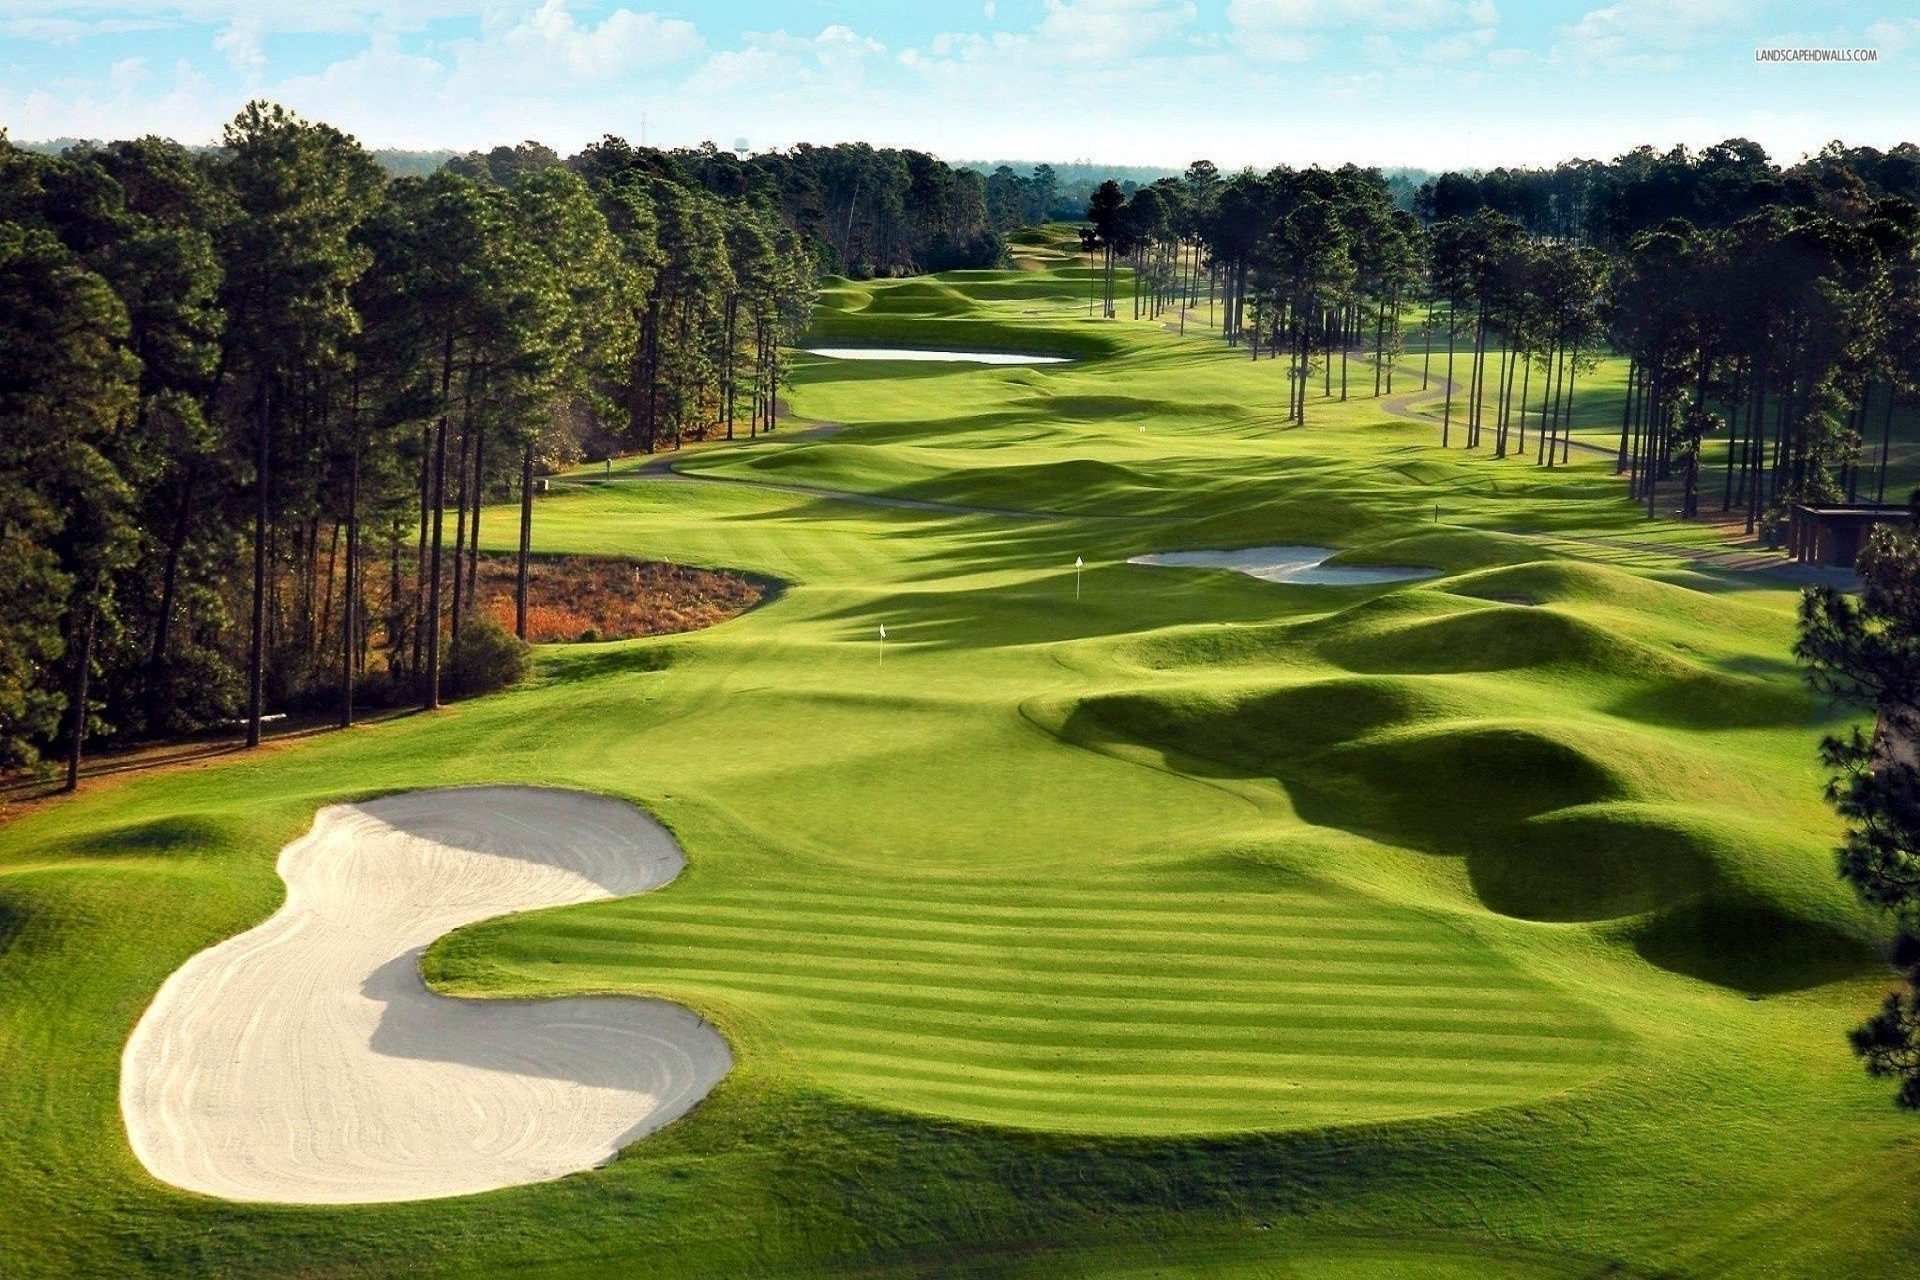 The top luxury golf course hotels in the world